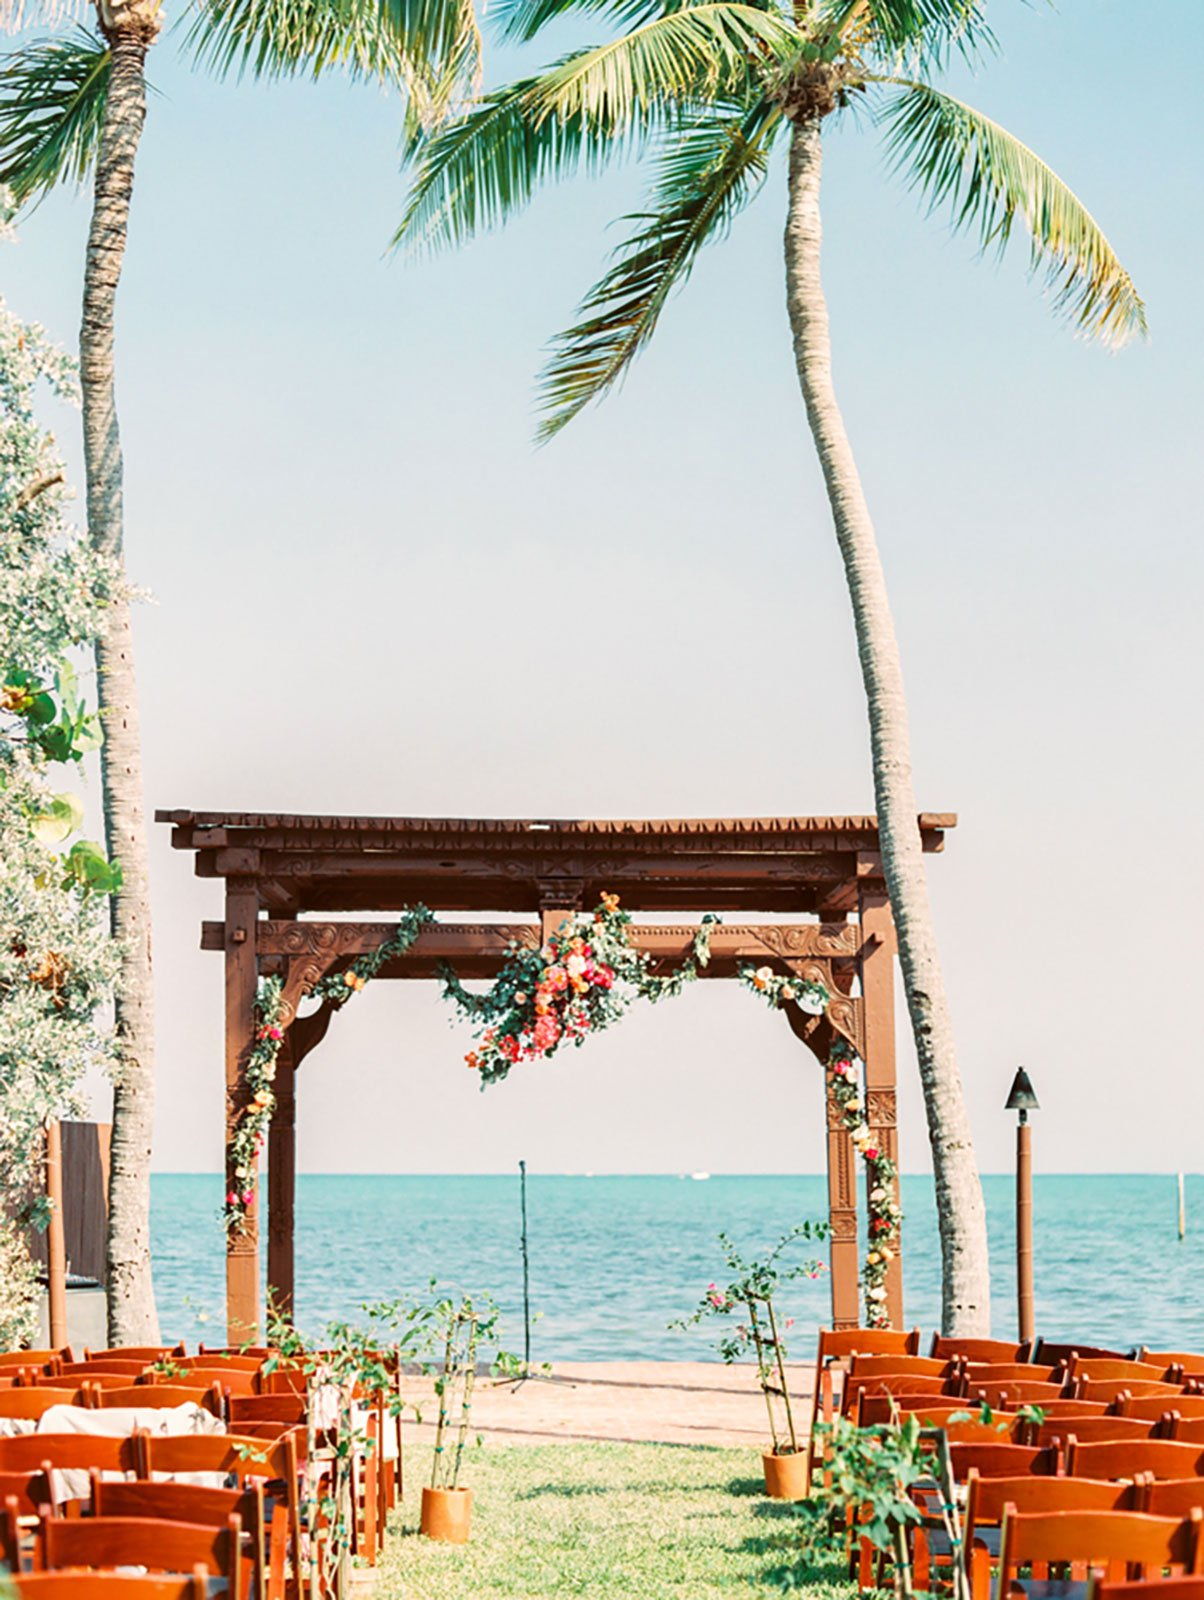 Terra-cotta pots of bougainvillea, succulents and greenery served as aisle decor at this destination wedding in Islamorada